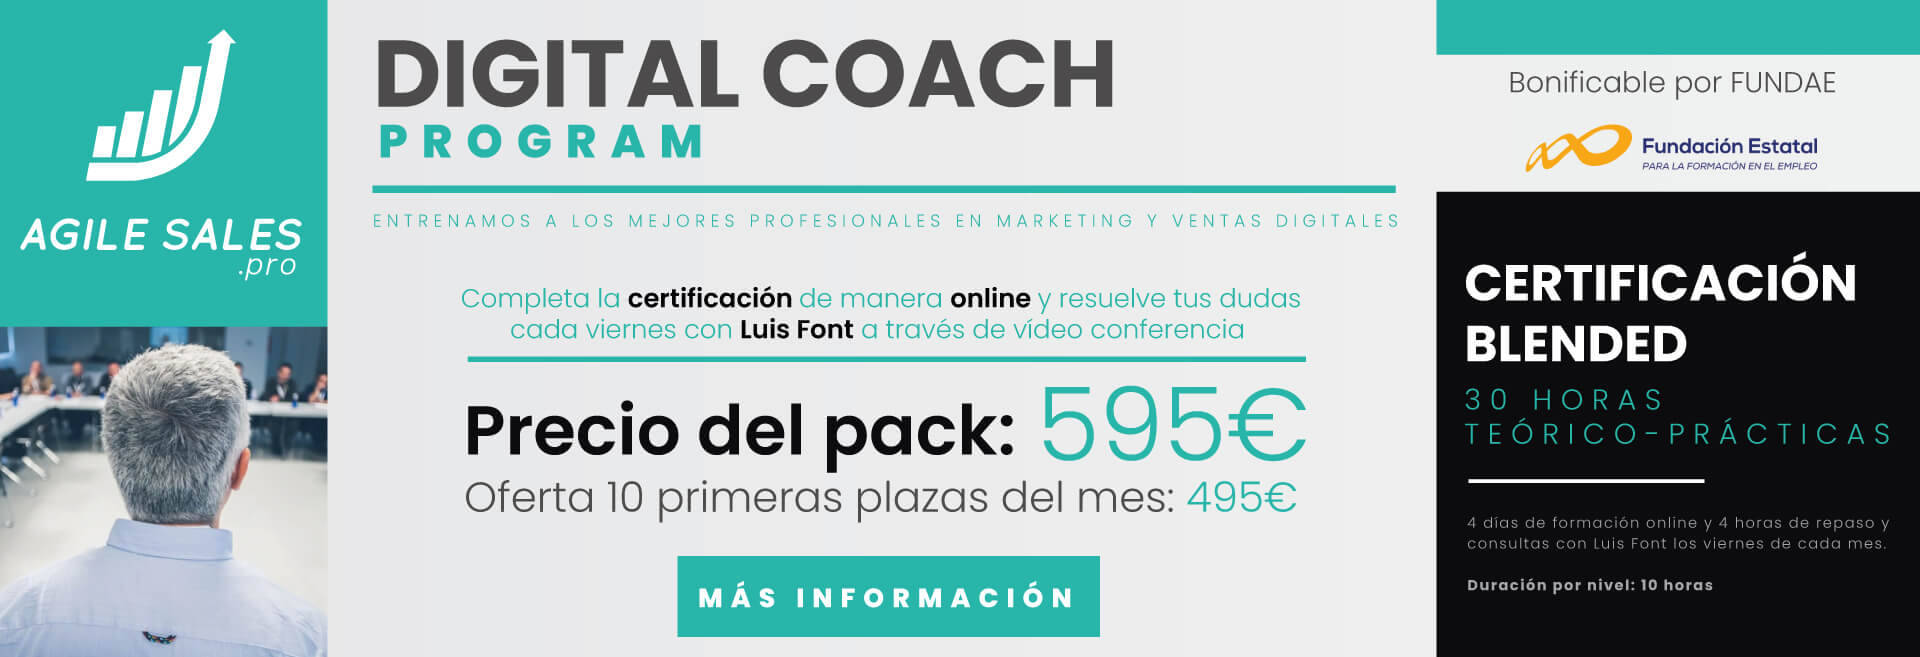 slider_digital_coach